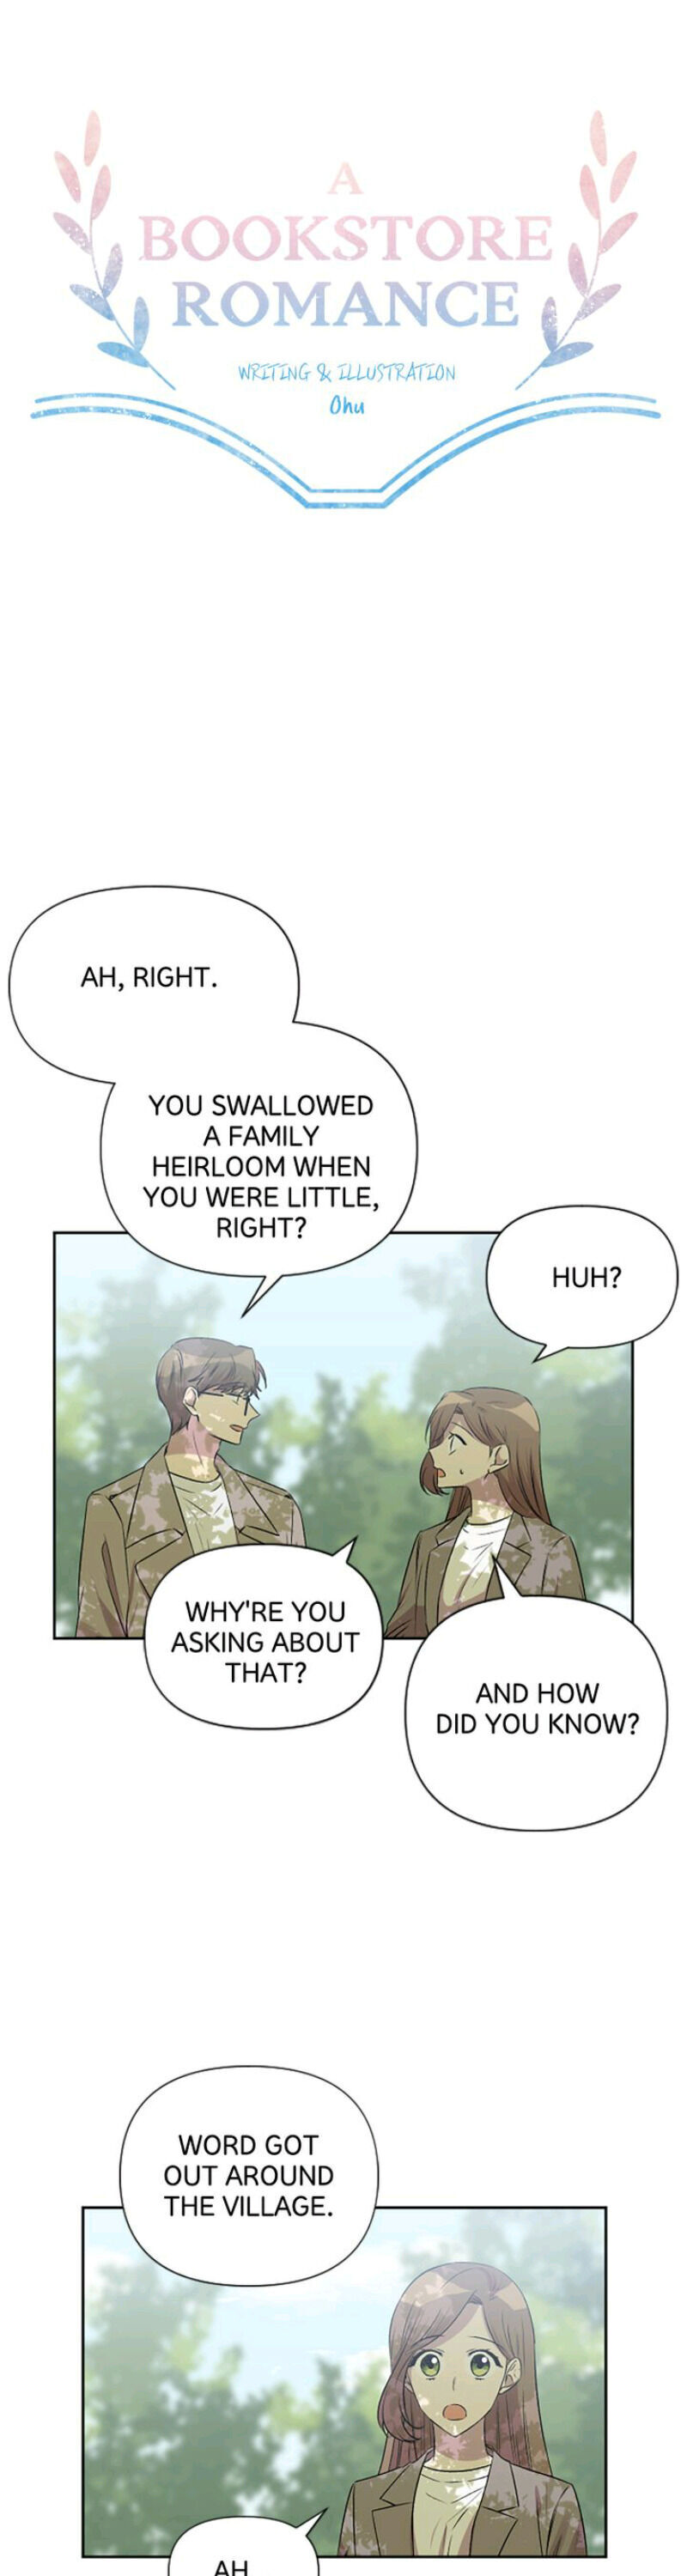 Romance In The Old Bookstore - chapter 52 - #2